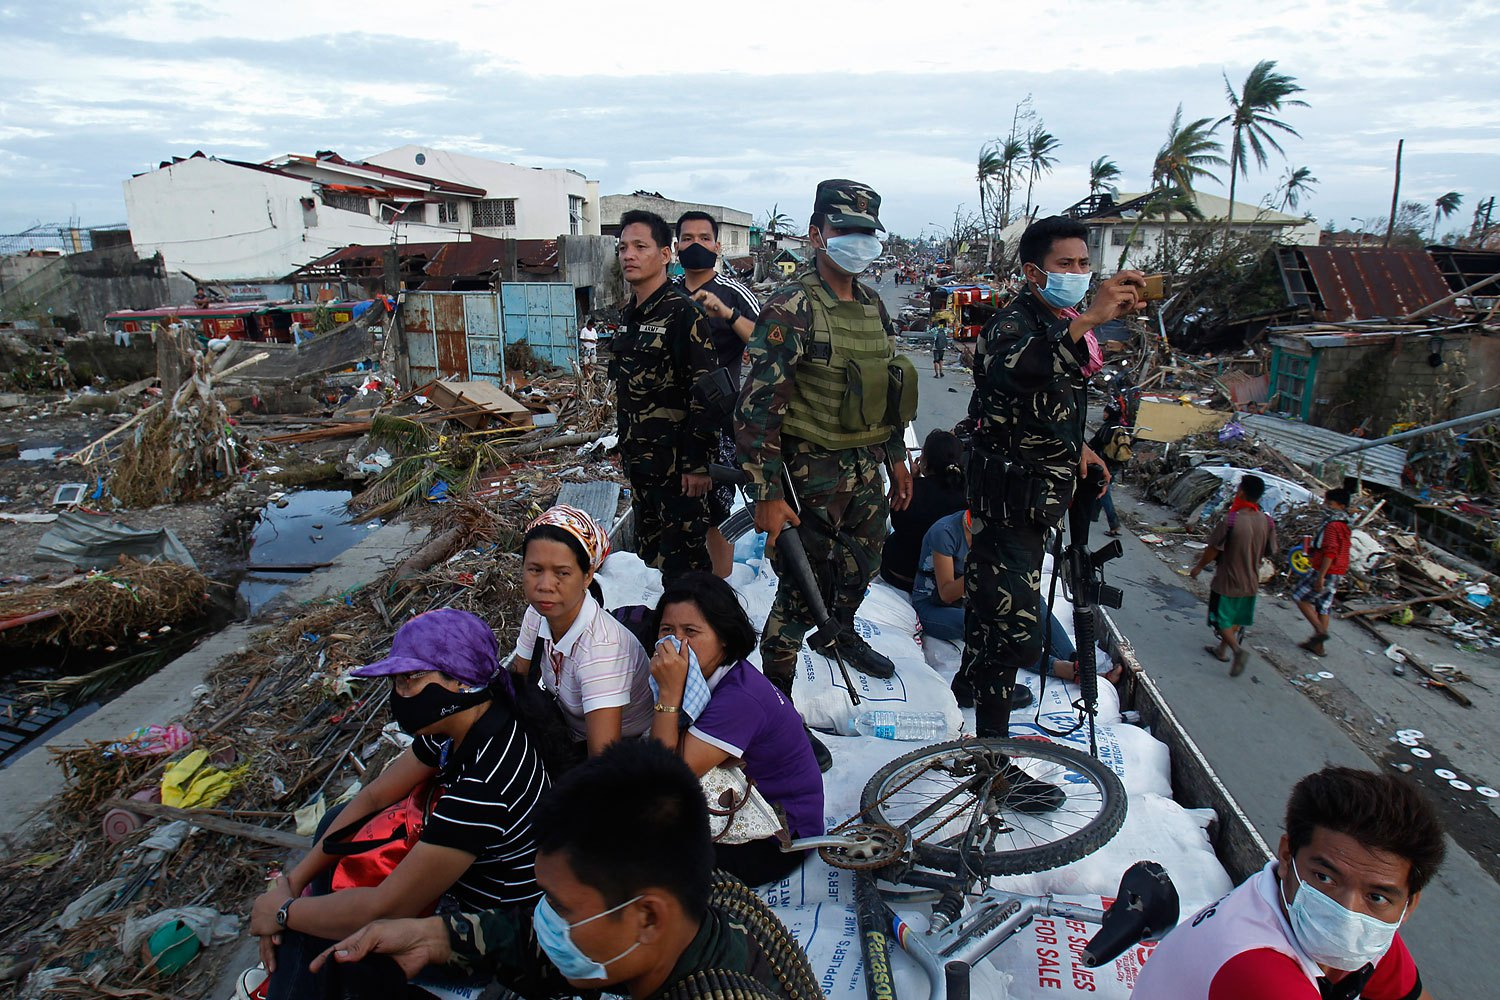 Soldiers and residents look at the devastation of the town from a military aid supplies distribution truck after the Super typhoon Haiyan battered Tacloban city in central Philippines November 11, 2013.